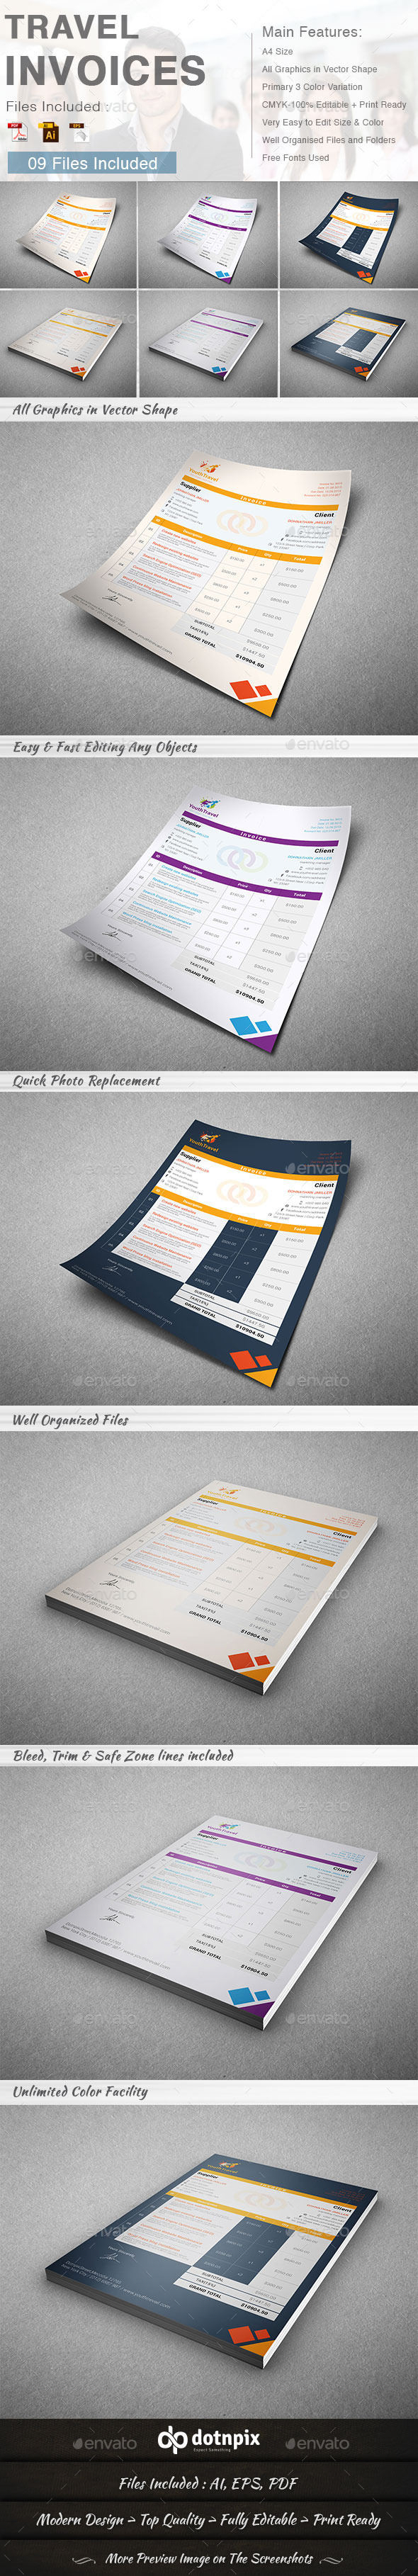 Travel Invoice - Proposals & Invoices Stationery